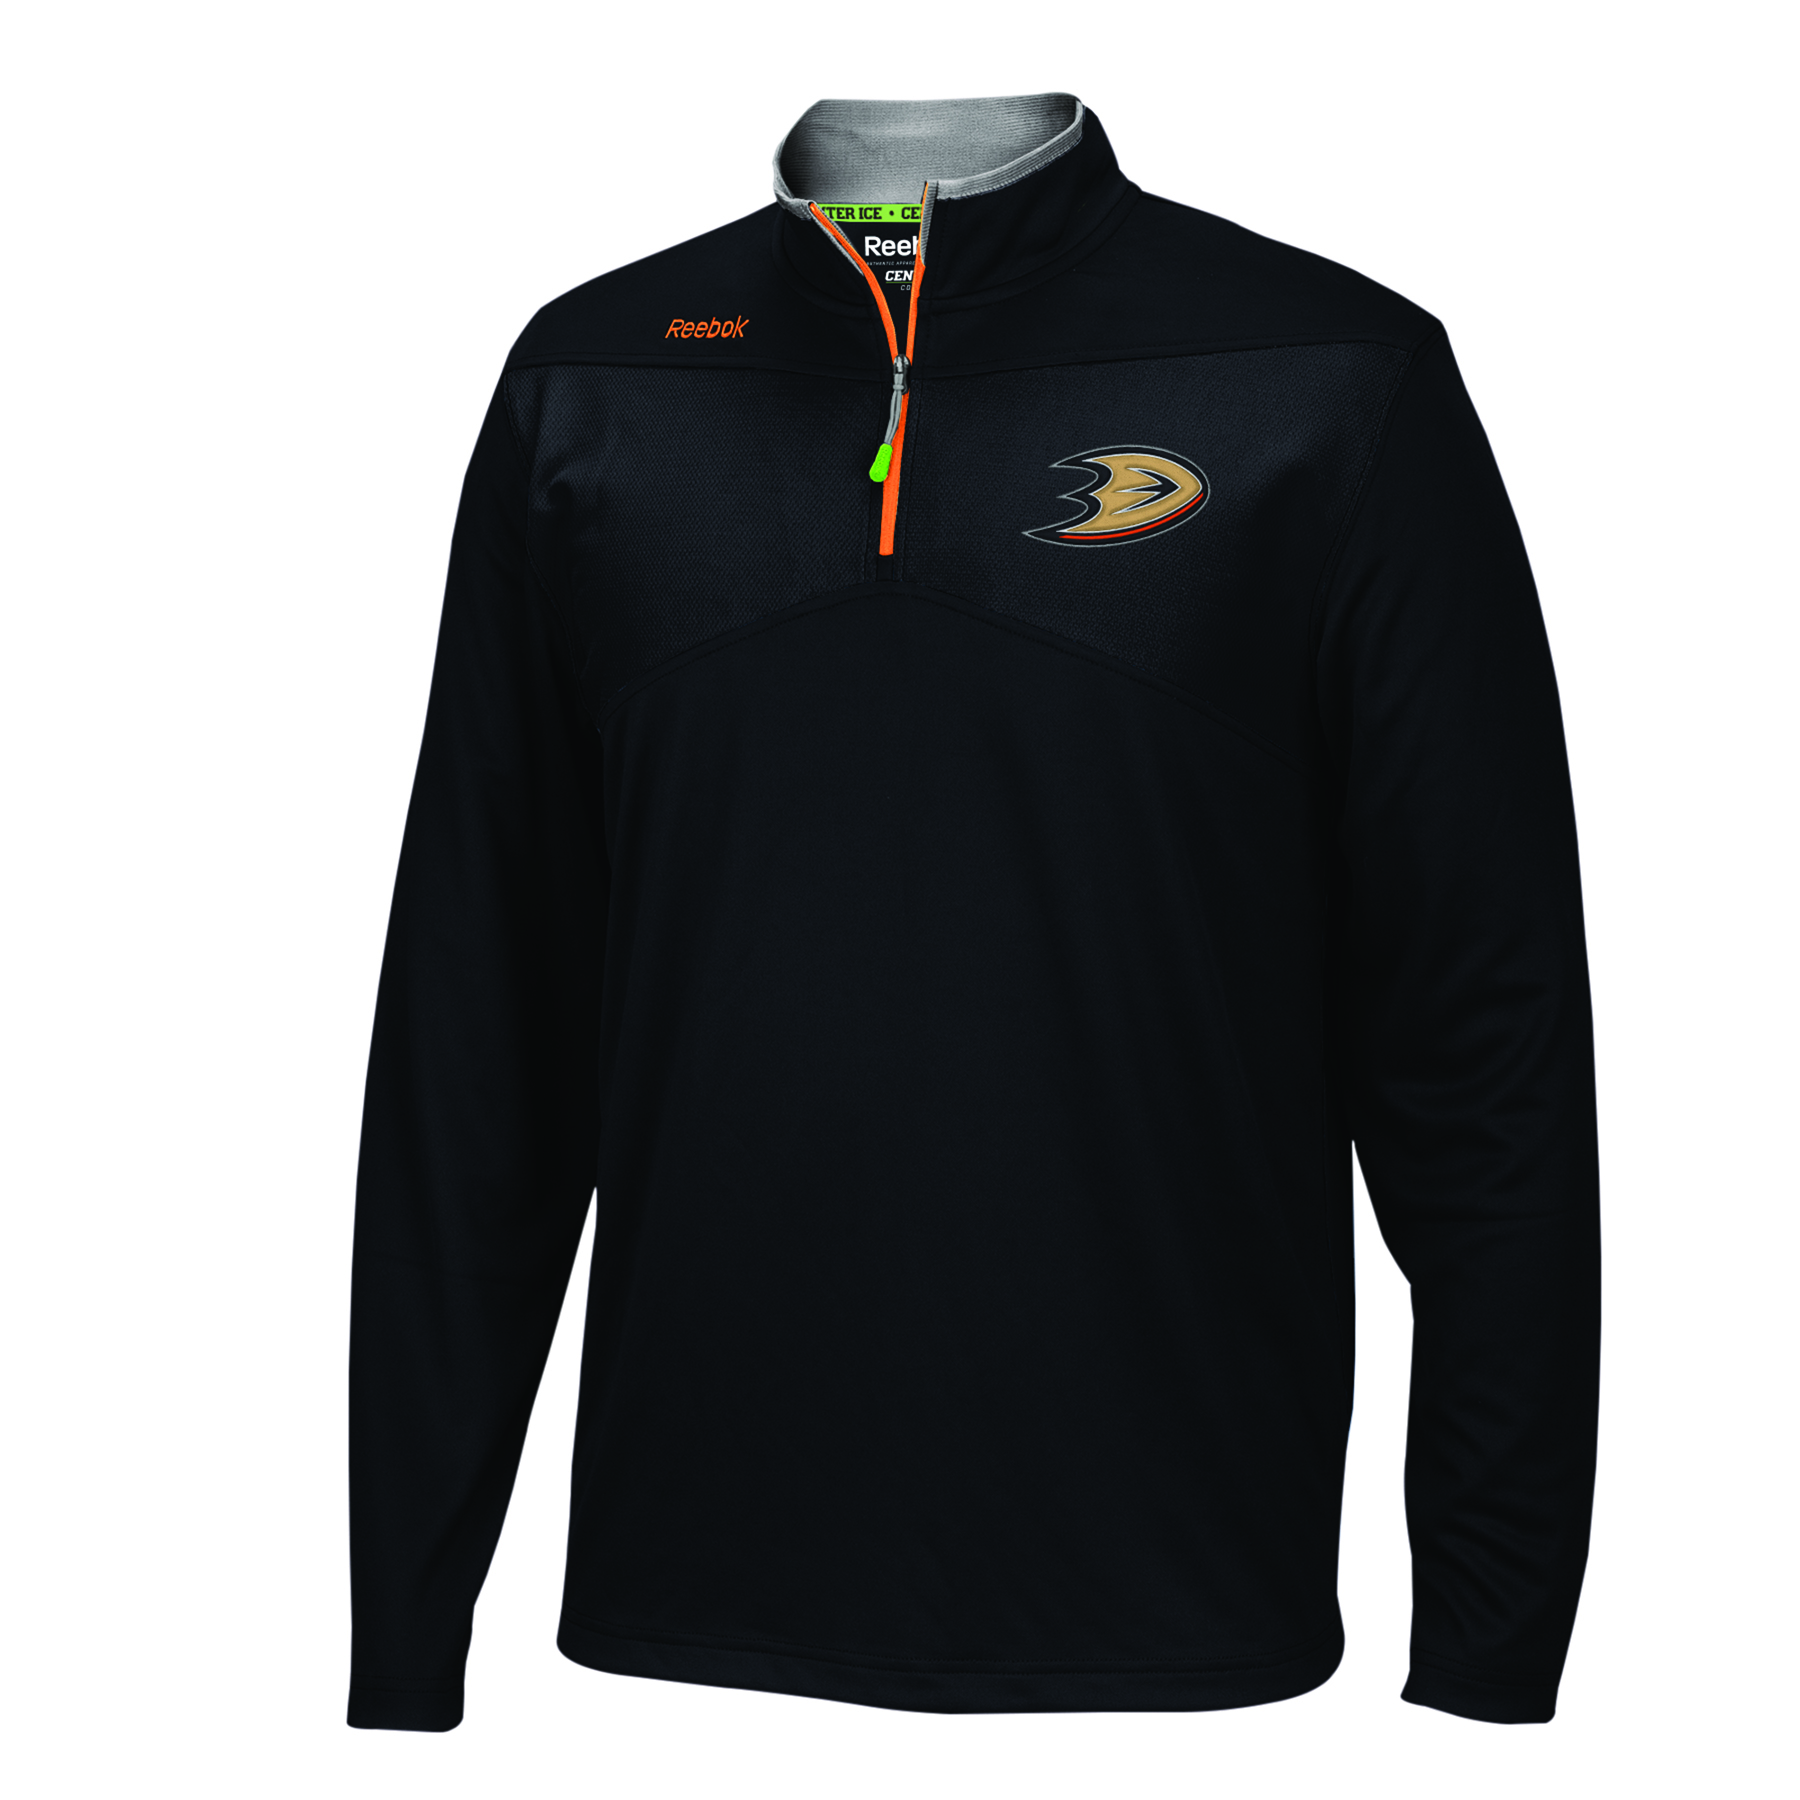 Anaheim Ducks Center Ice 1/4 Zip Jacket